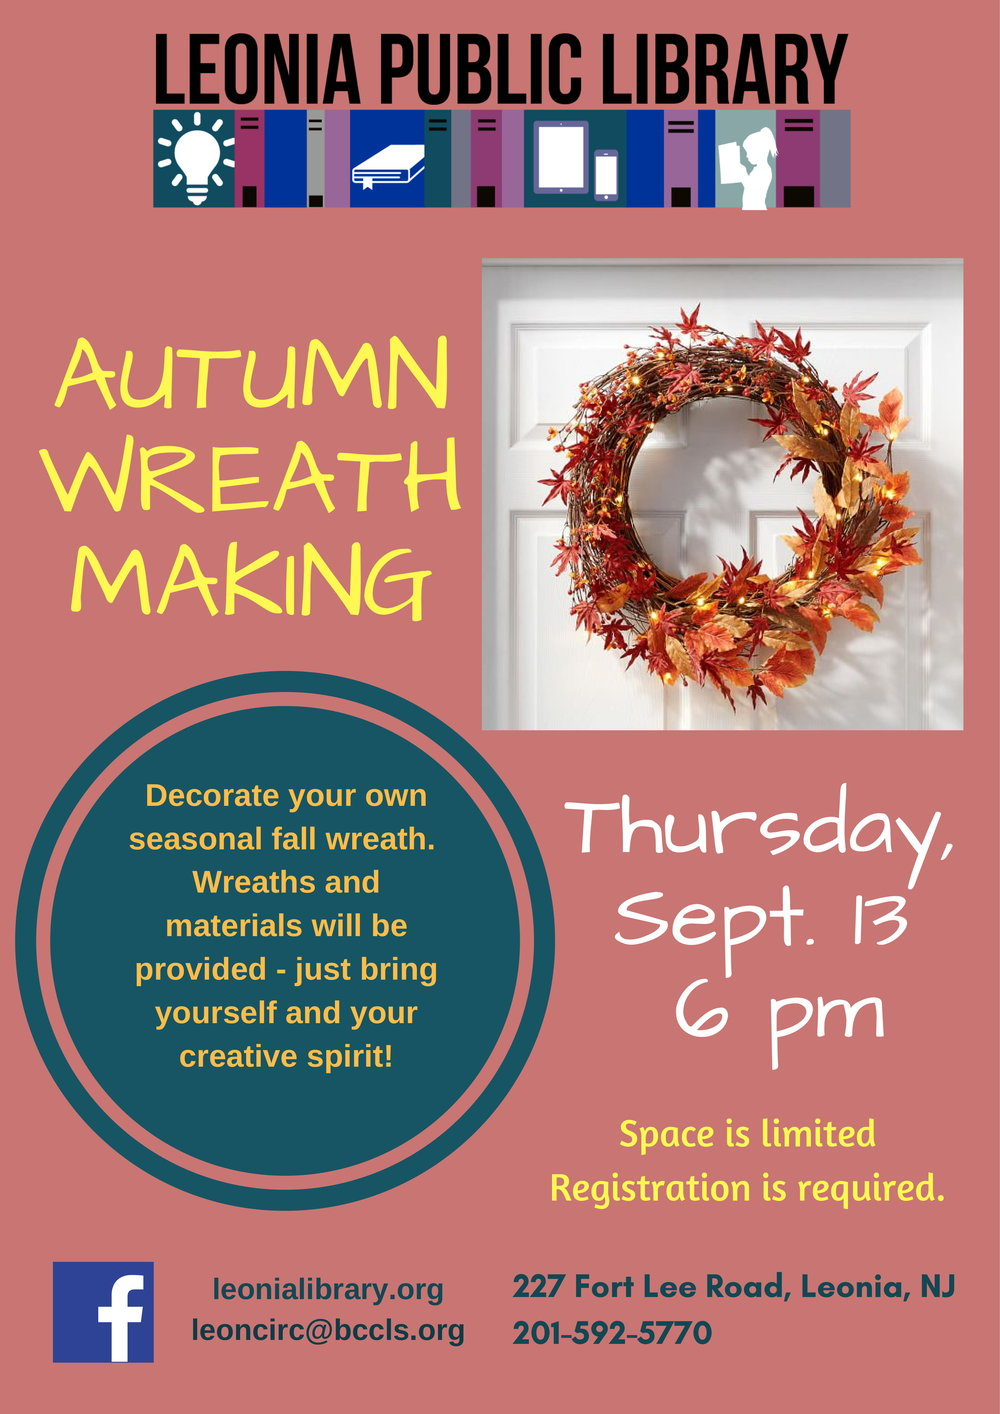 AUTUMN WREATH MAKING-1.jpg